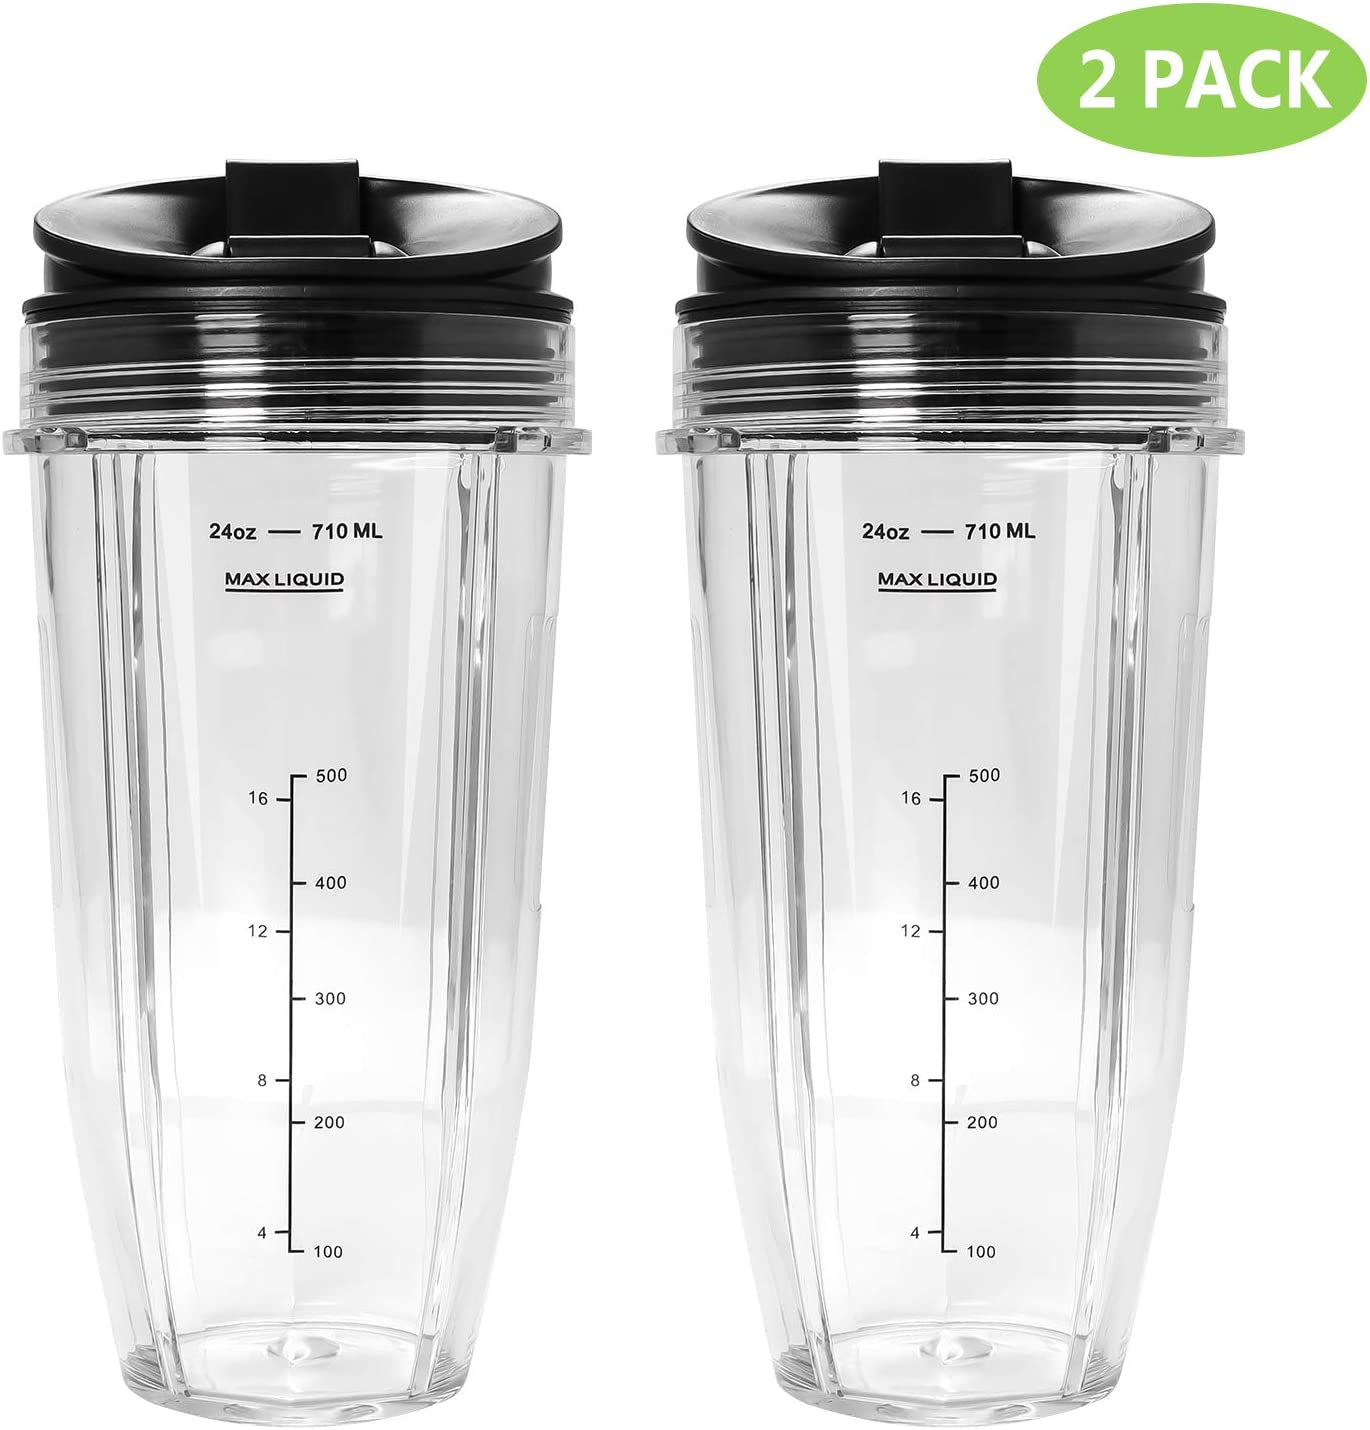 Ninja 24 Oz Replacement Cups with Sip & Seal Lids, Ninja Replacement Cup Compatible with BL450 BL454 BL456 BL480 BL481 BL482 BL490 BL640 BL642 BL682 for Nutri Ninja Auto IQ Series Blenders (2 Pack)